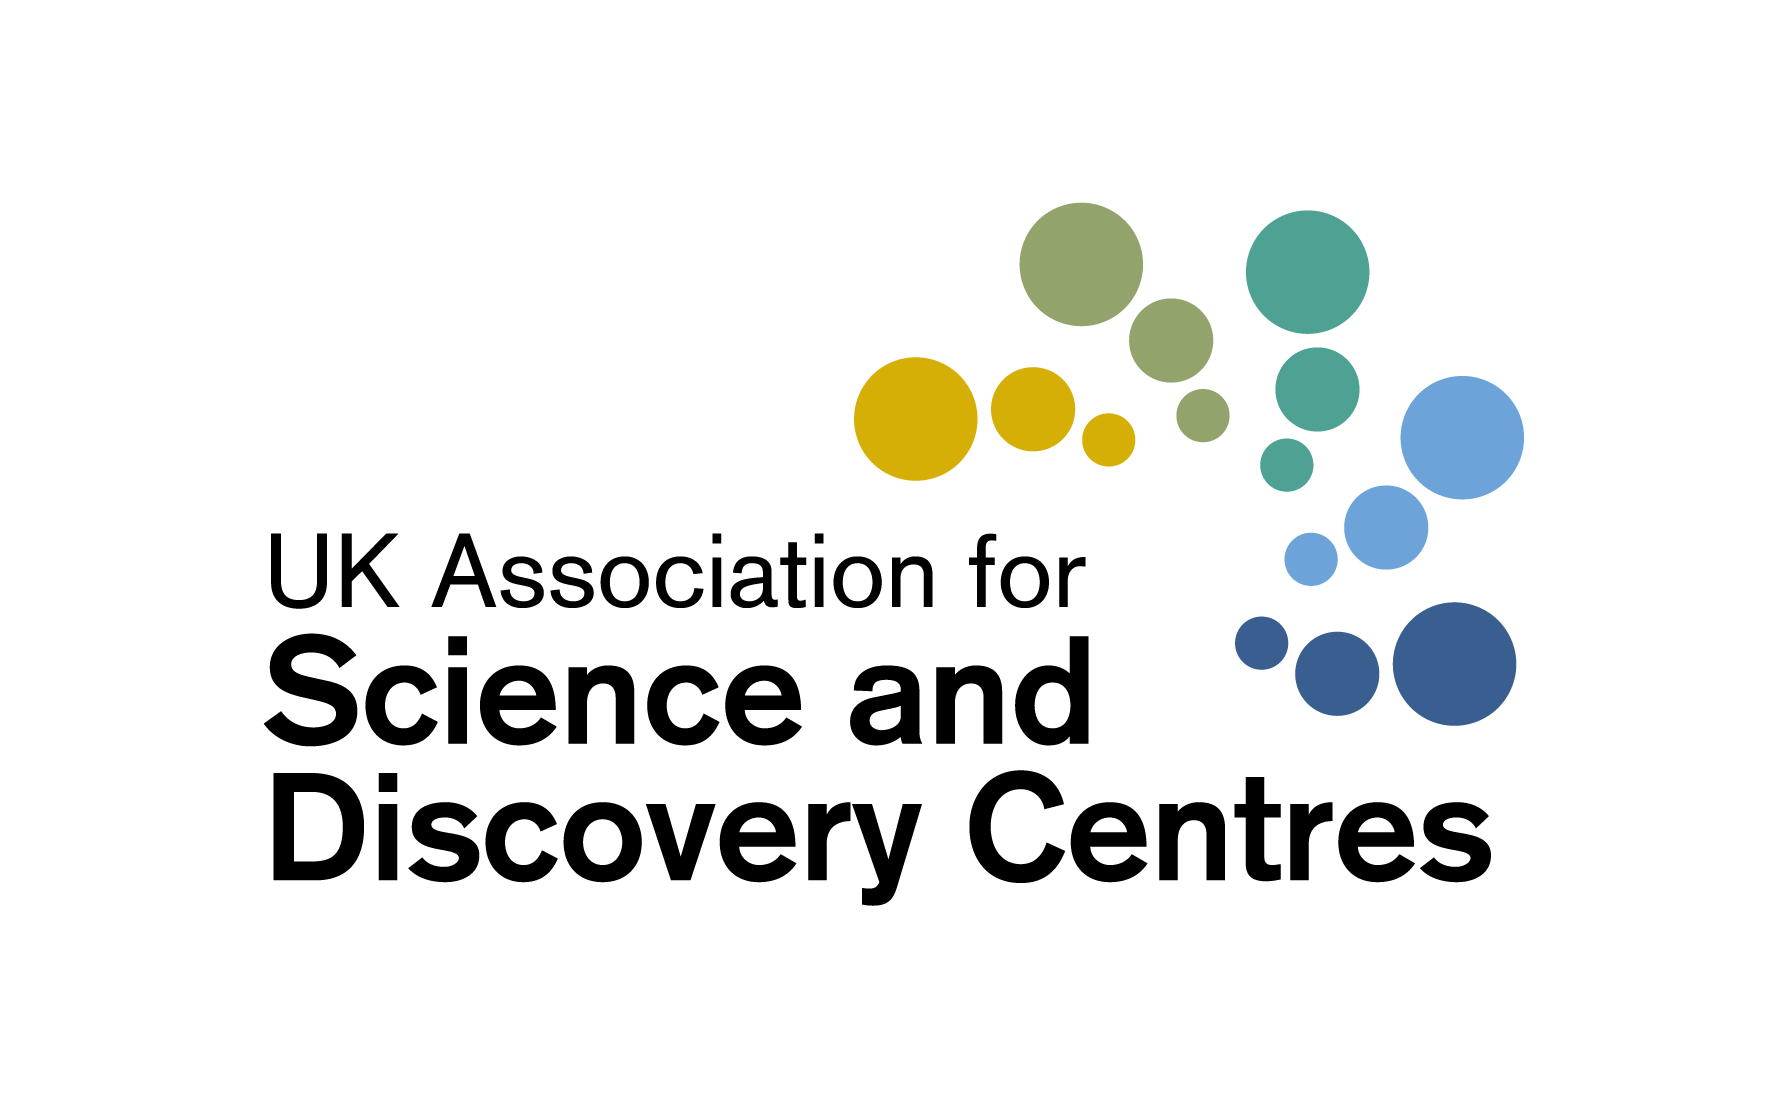 UK Association for Science and Discovery Centres